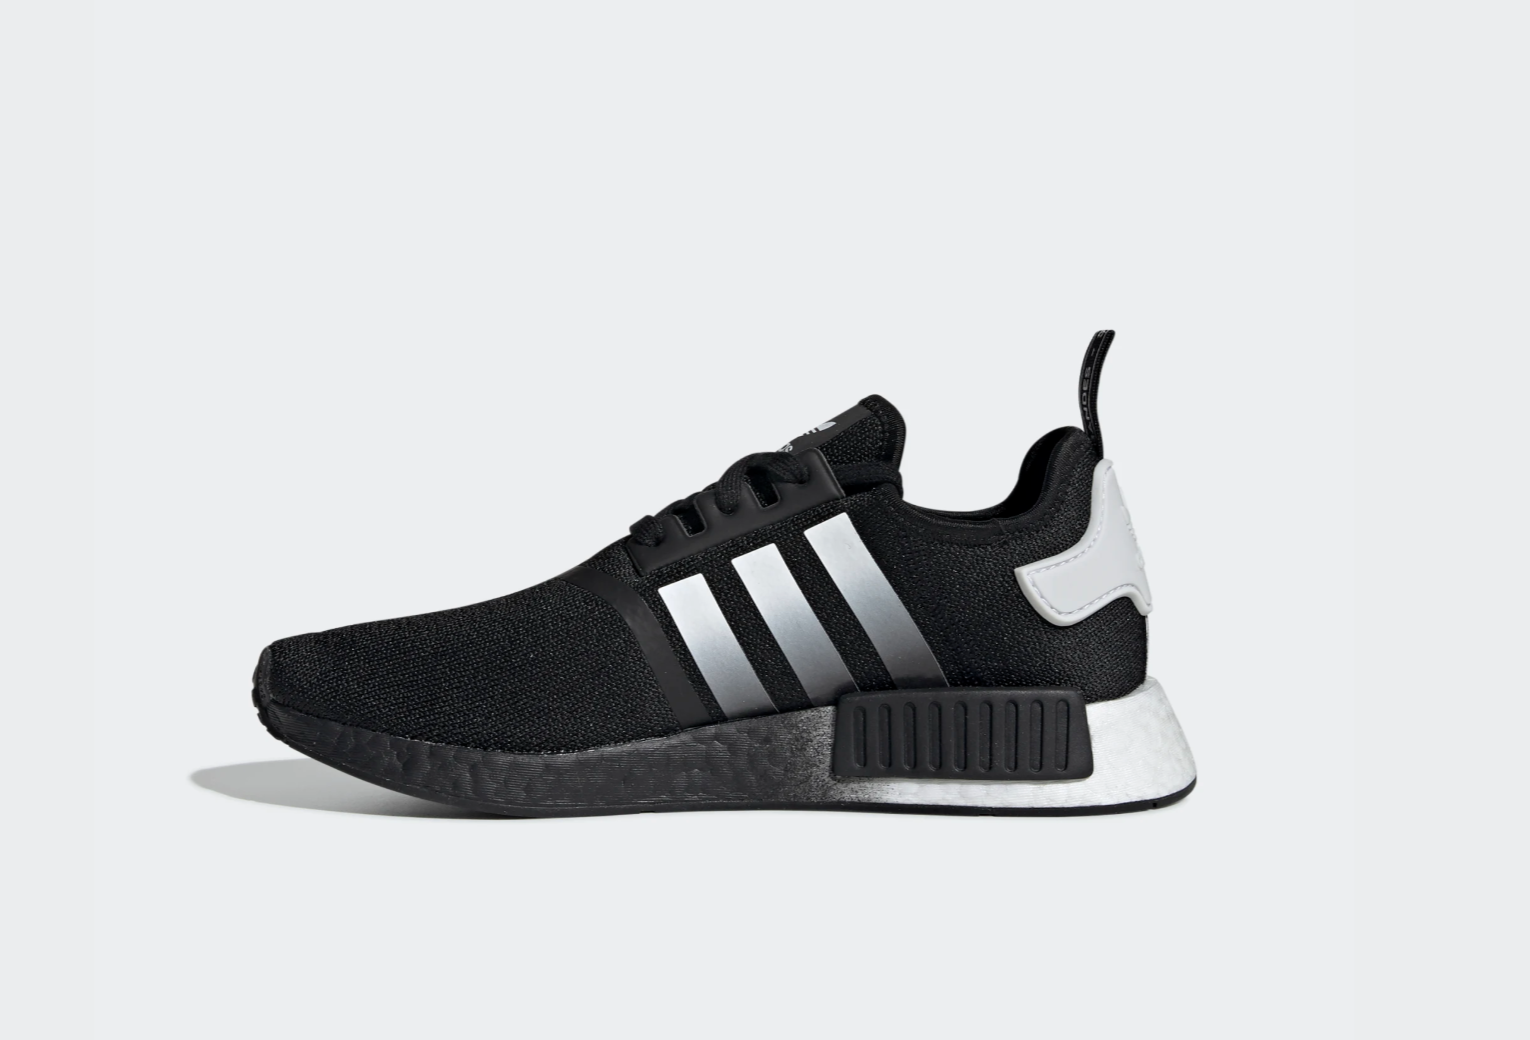 New Adidas Nmd R1 Shoes Faded Eg7399 Core Black Cloud White